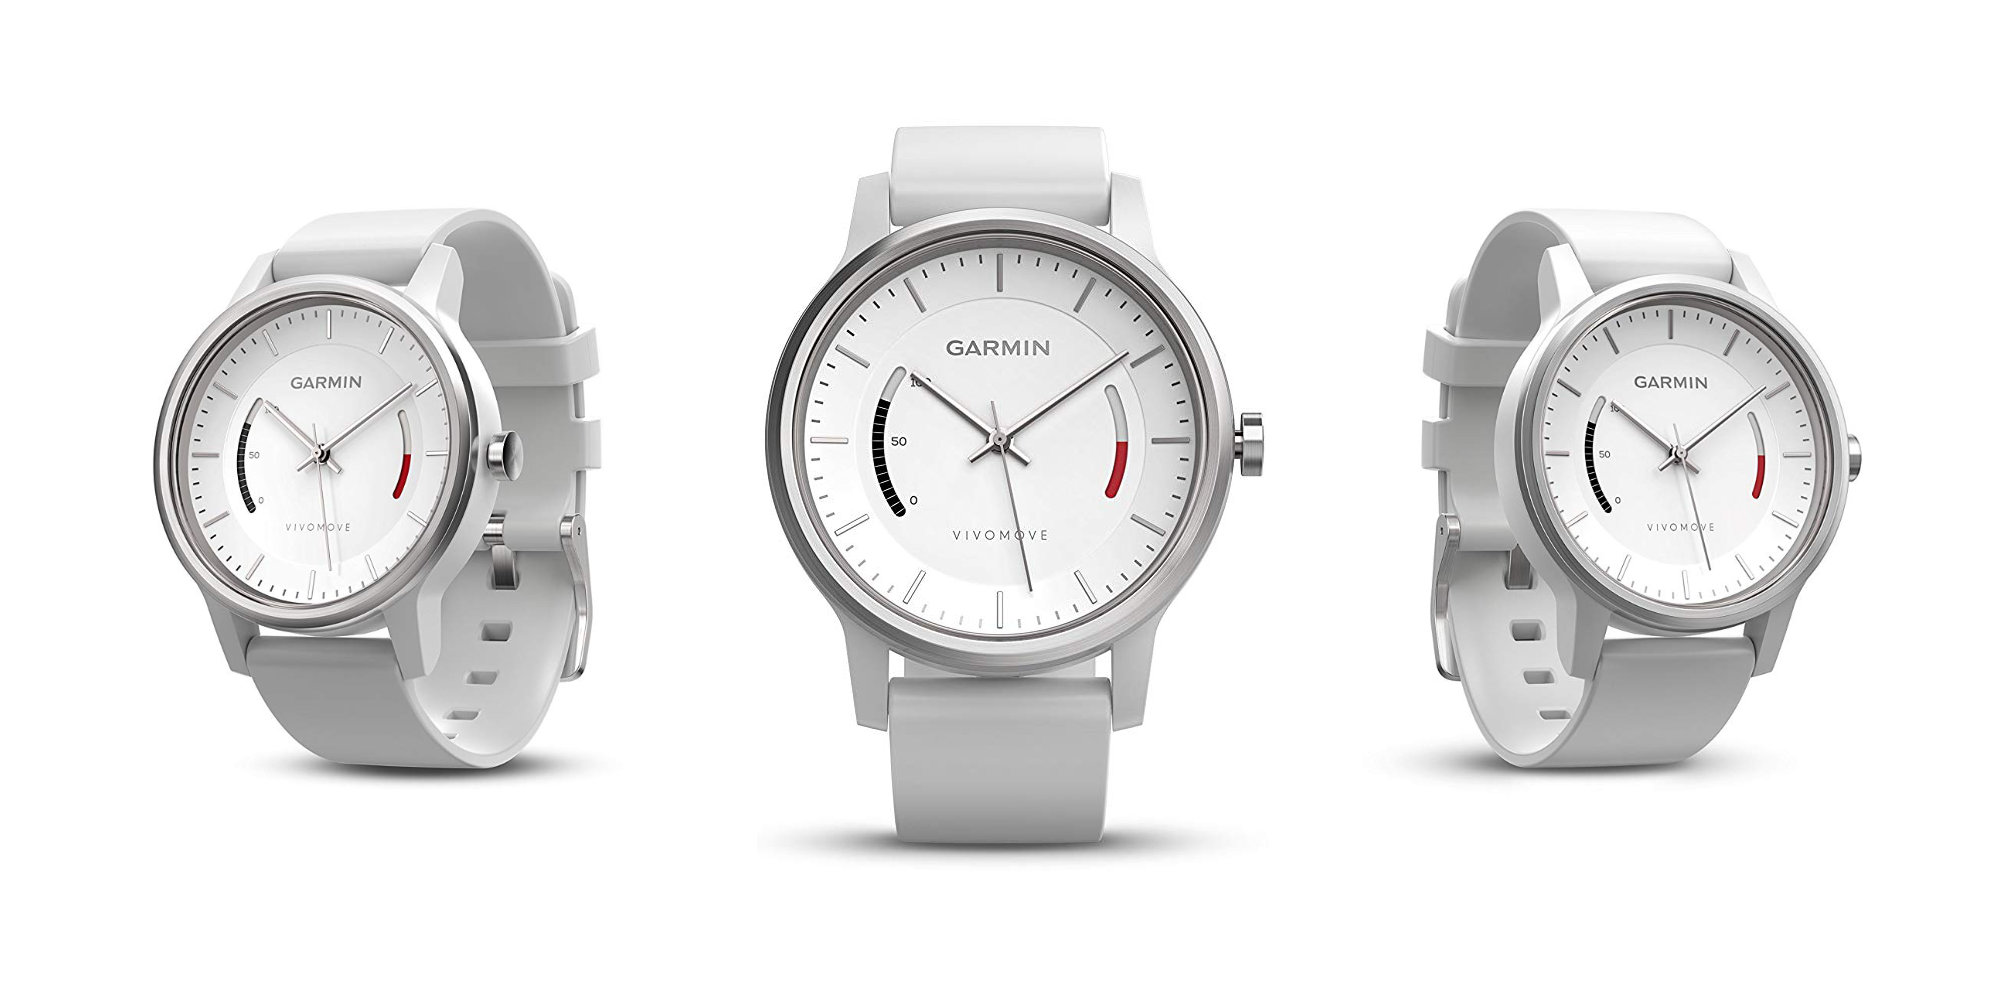 The Garmin vívomove Sport offers 1-year battery life, tracks activity, and more: $40 (20% off)